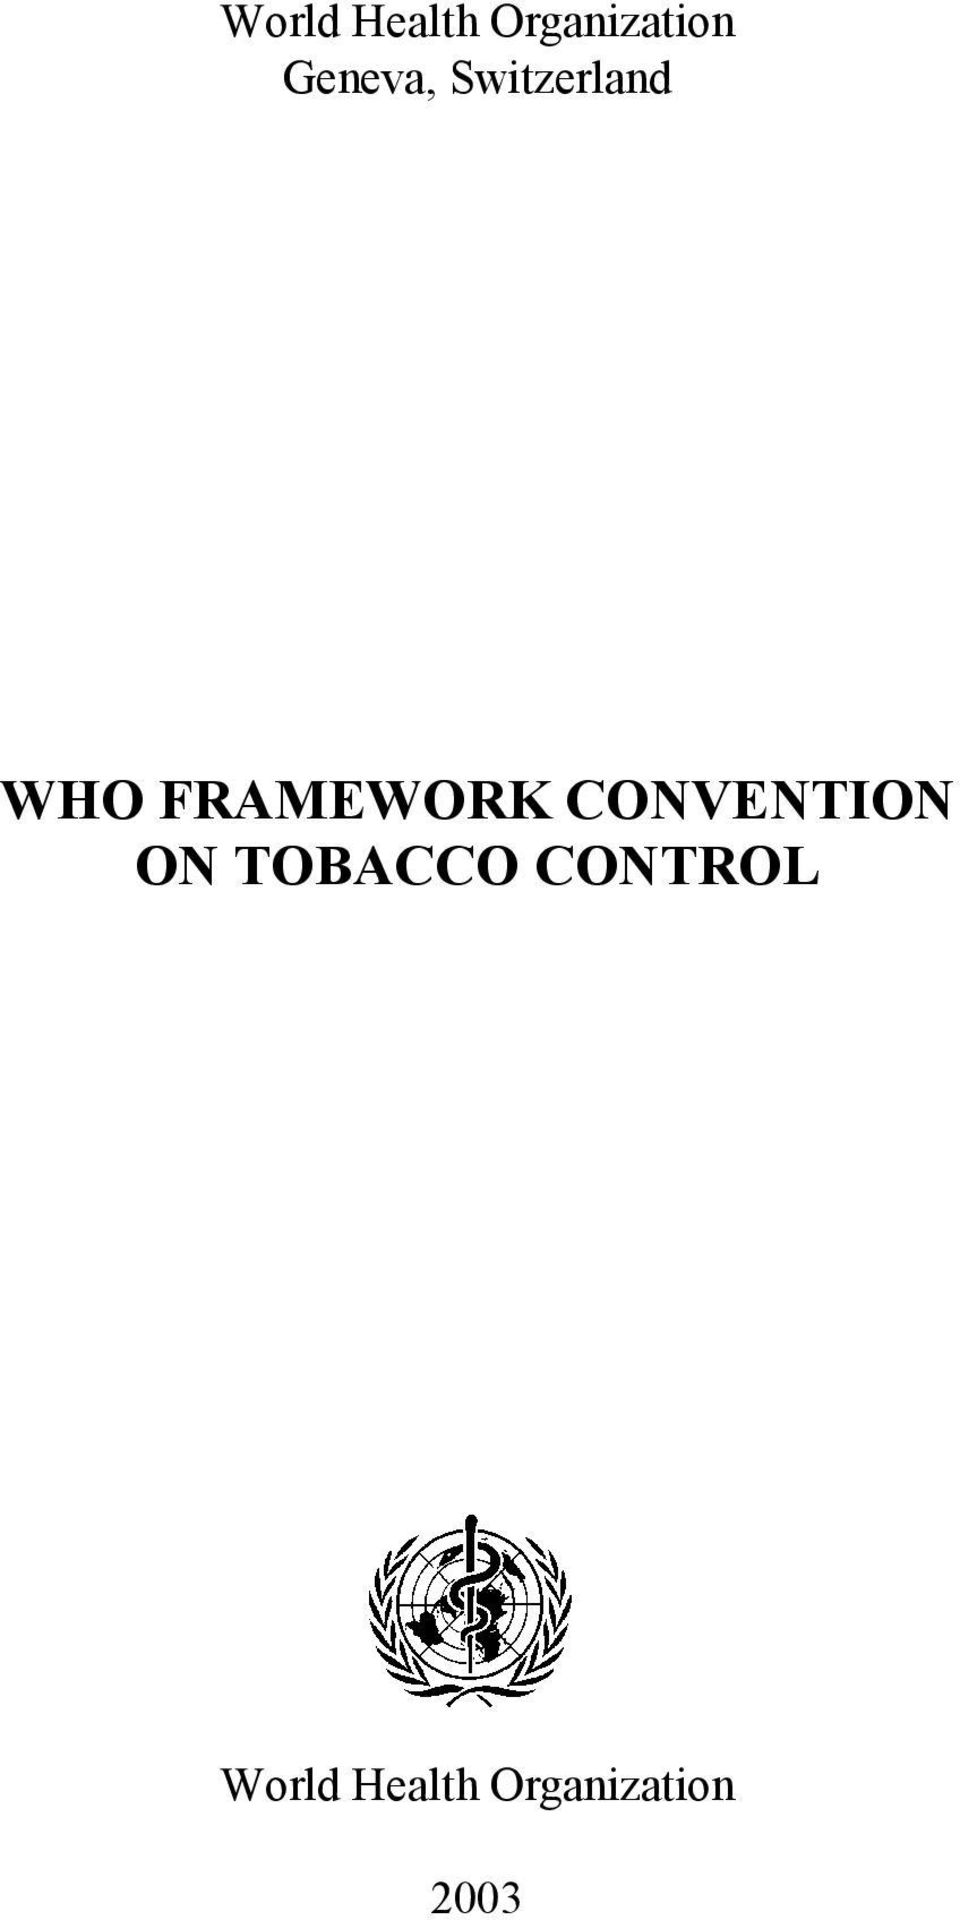 FRAMEWORK CONVENTION ON